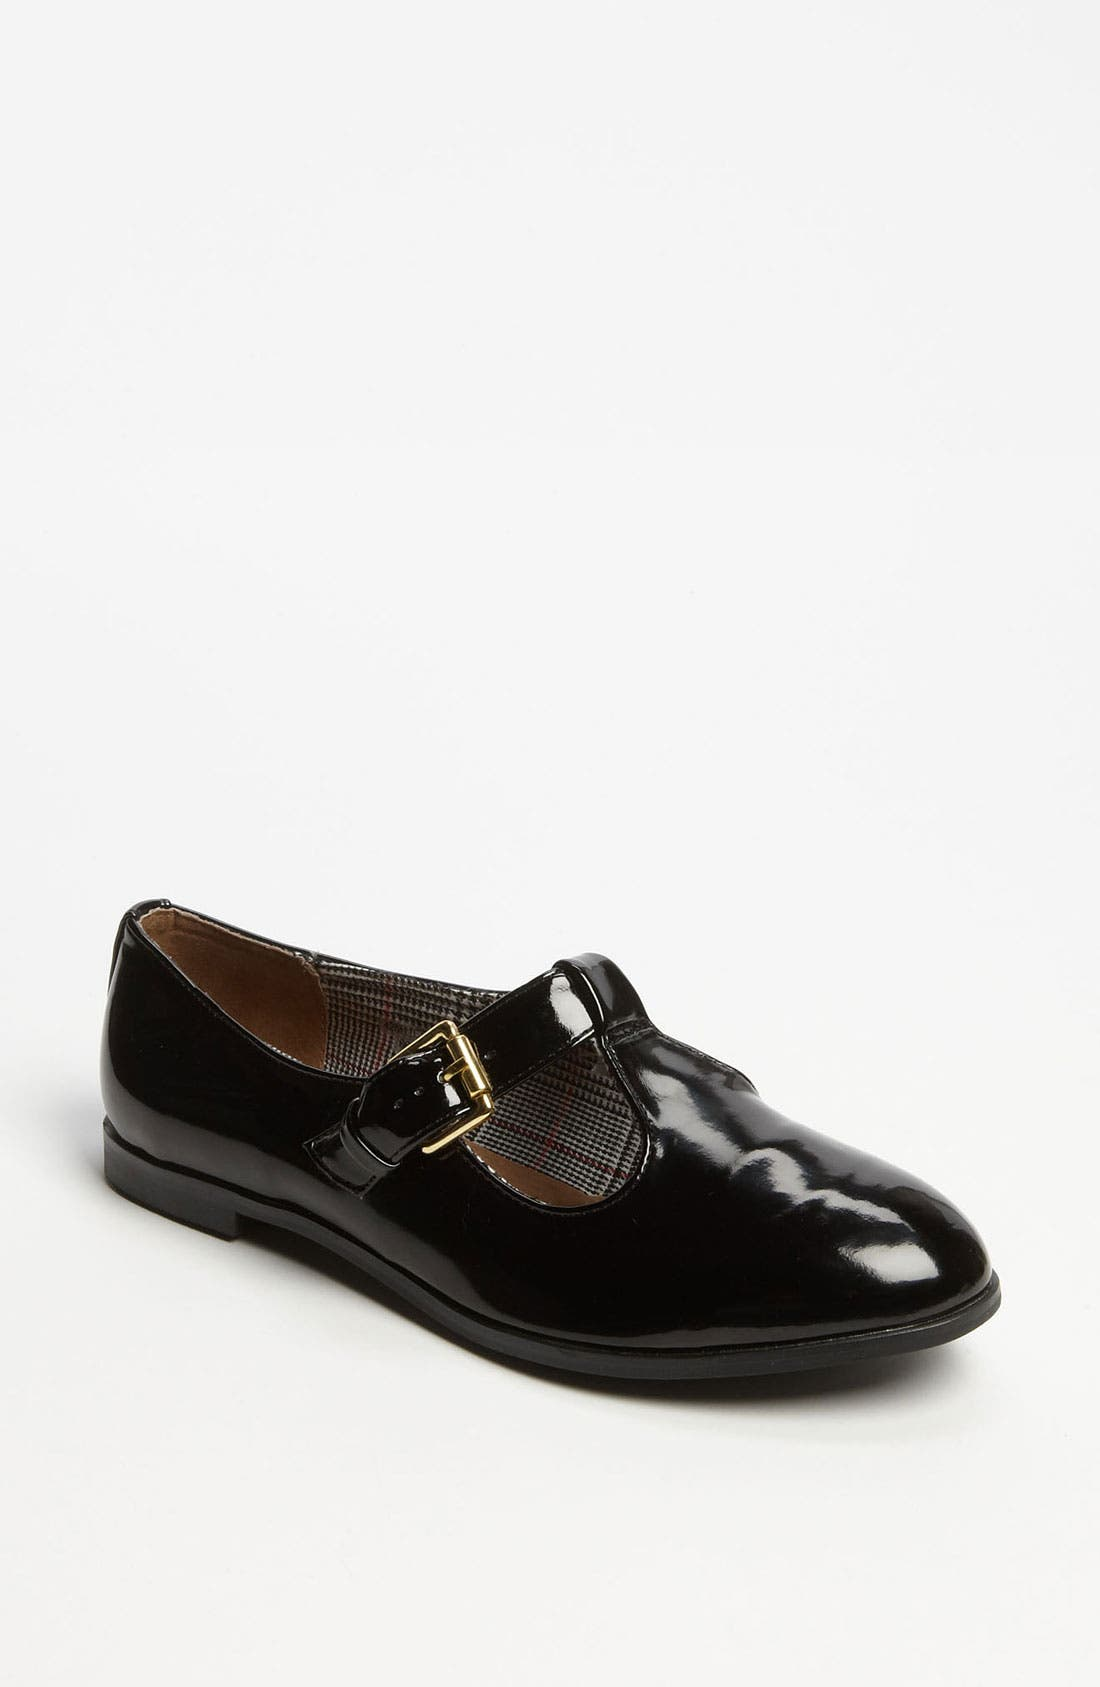 Alternate Image 1 Selected - Topshop 'Maybe' T-Strap Flat